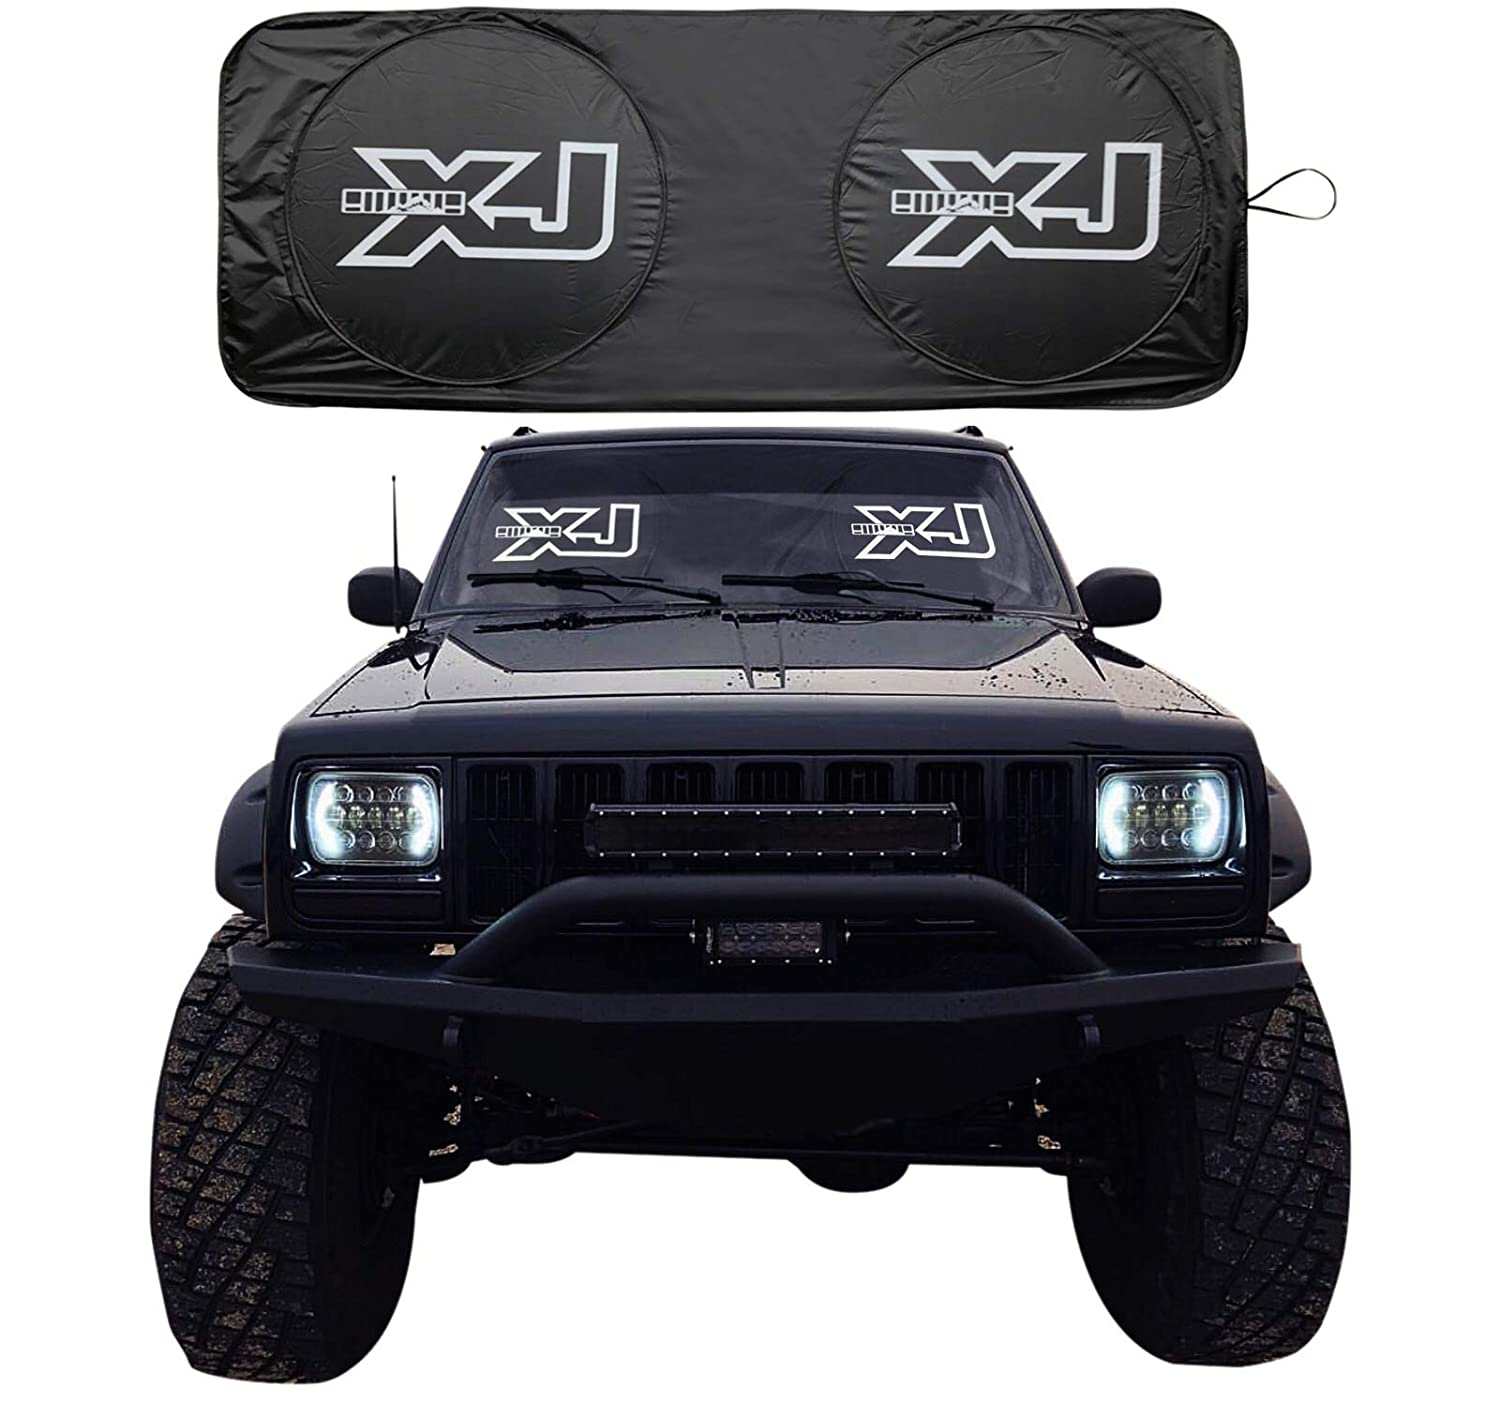 Rorex Jeep Cherokee Xj Accessories Windshield Sunshade Banner Sun Aftermarket Fog Lights Shield Fits Every